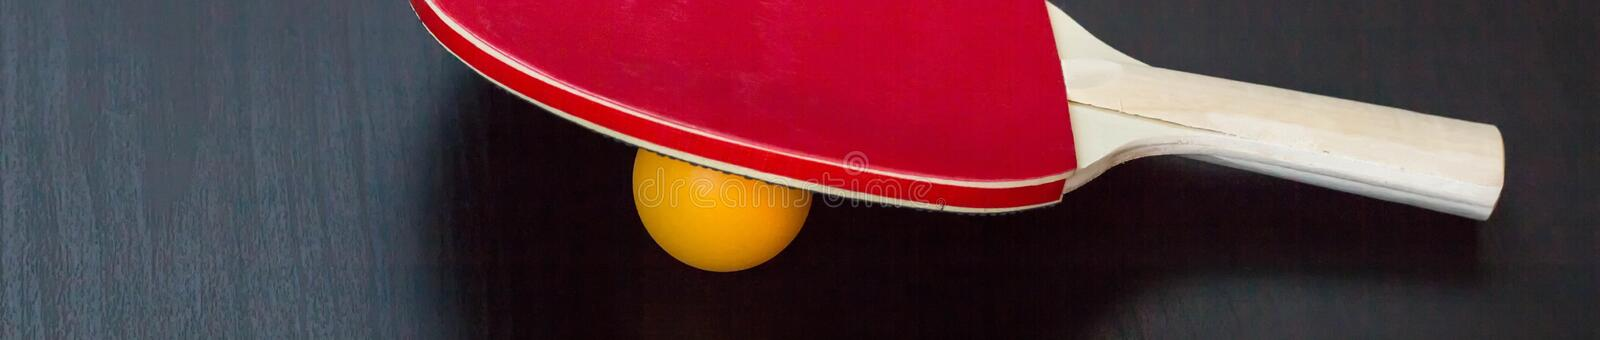 banner of table tennis or ping pong racket and ball on a black background stock photos